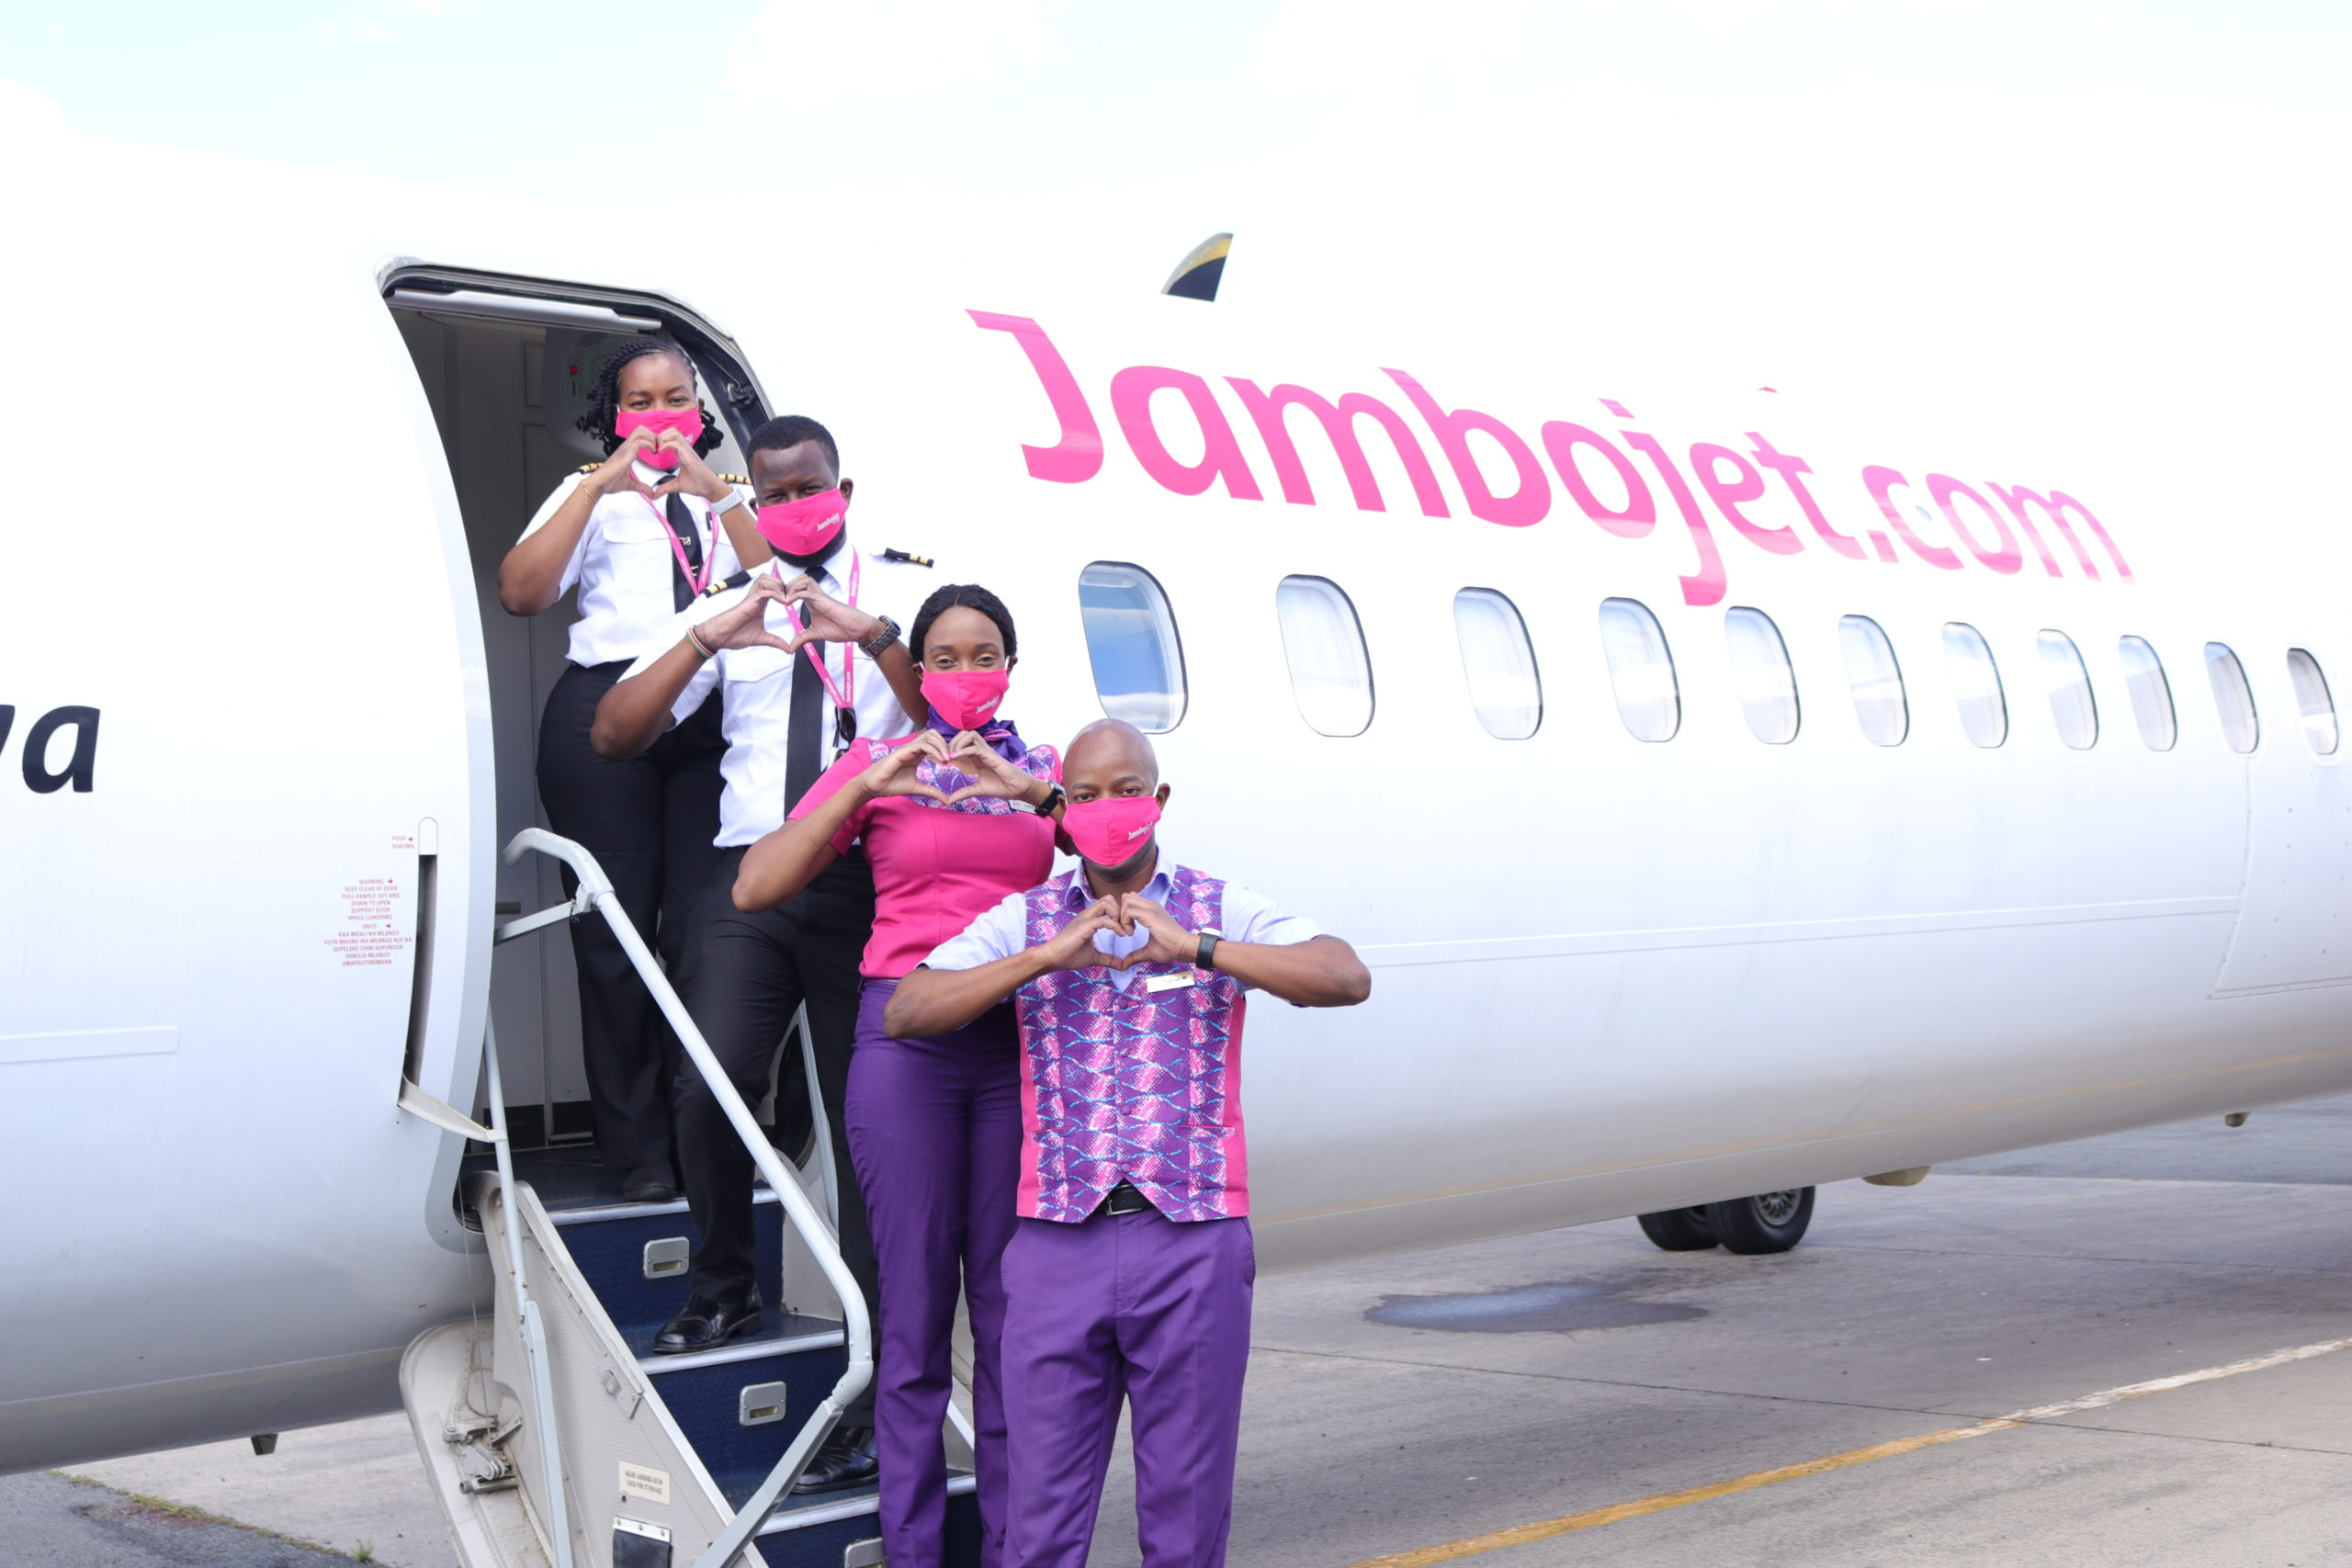 Jambojet Launches Campaign to Encourage Domestic Travel - Capital Business